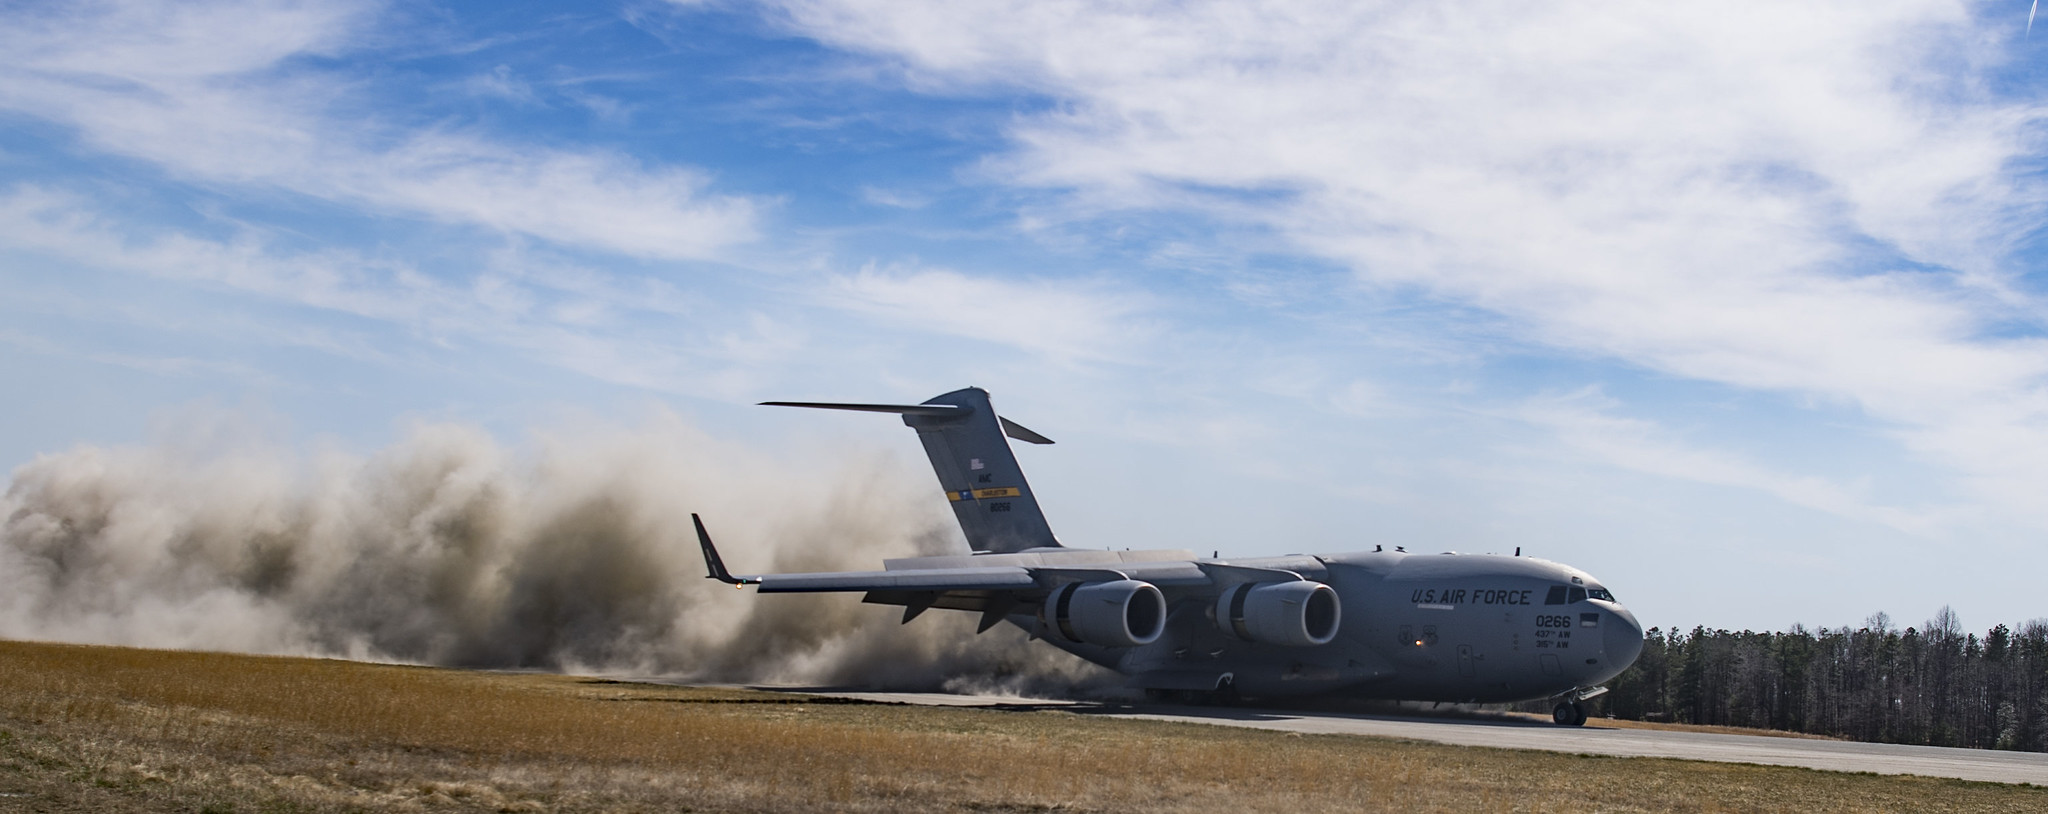 A U.S. Air Force C-17 Globemaster III conducts semi-prepared runway operations training after takeoff from Joint Base Charleston, S.C., March 27, 2019. (Tech. Sgt. Gregory Brook/Air Force))